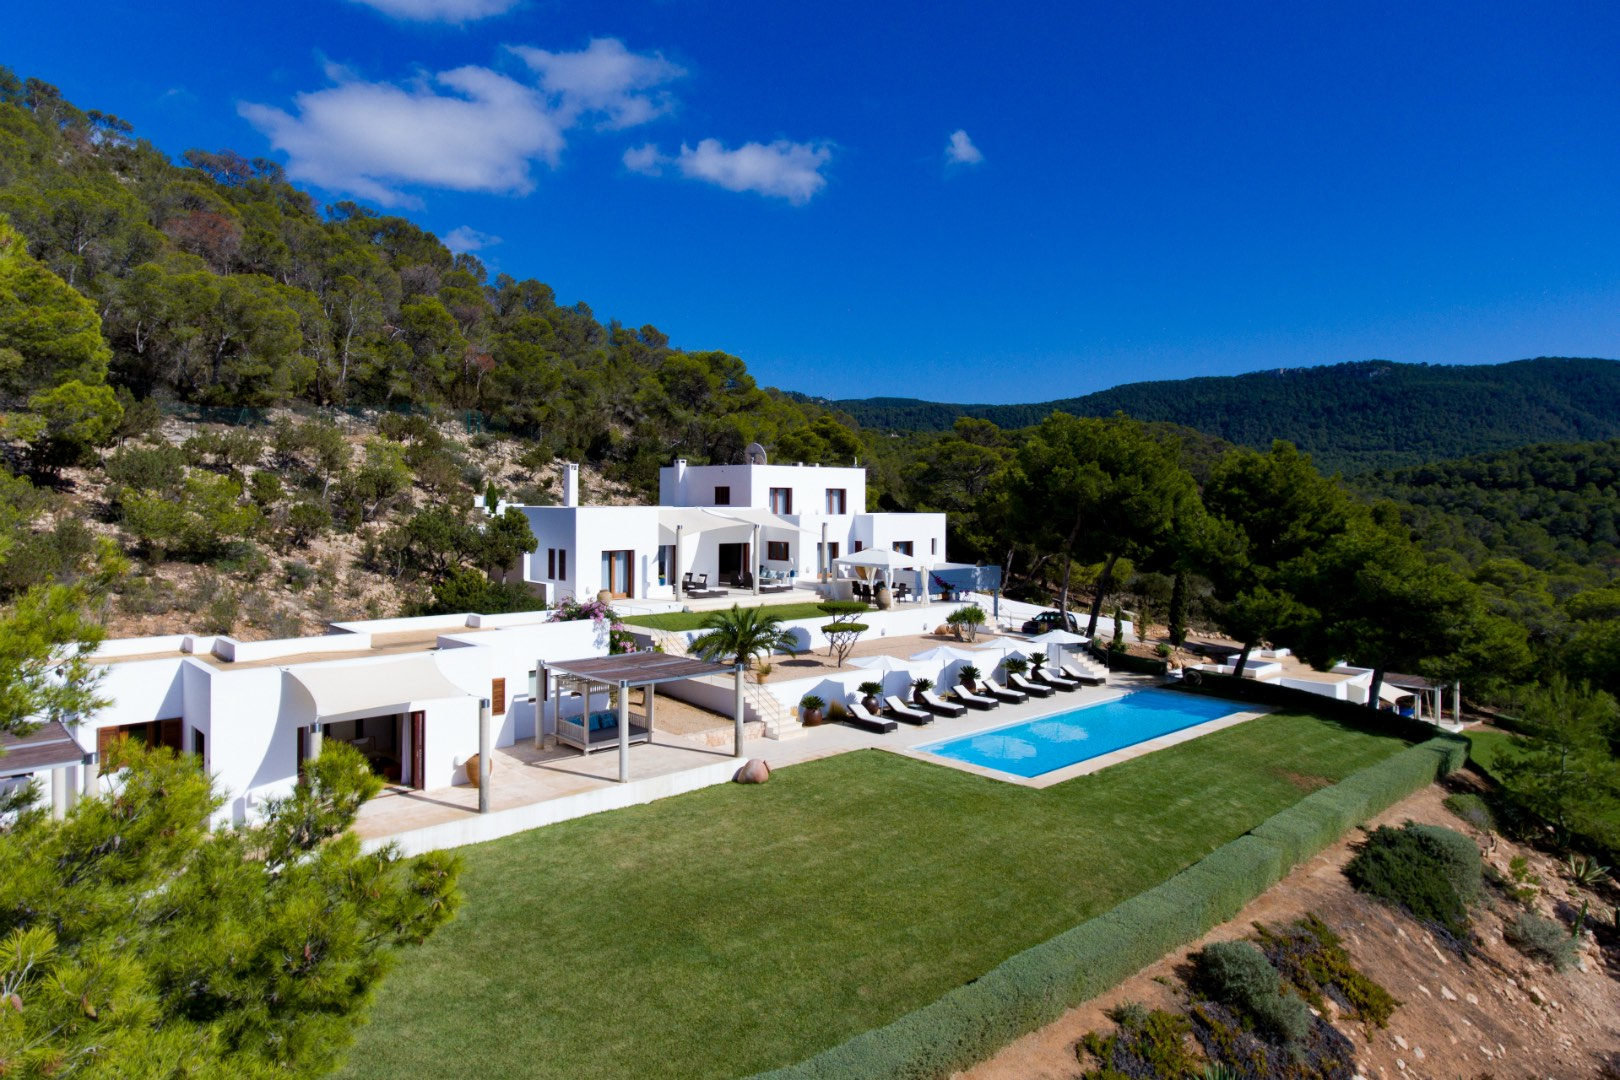 Holidays Villas Luxury Holiday Villas To Rent In Ibiza Azure Holidays